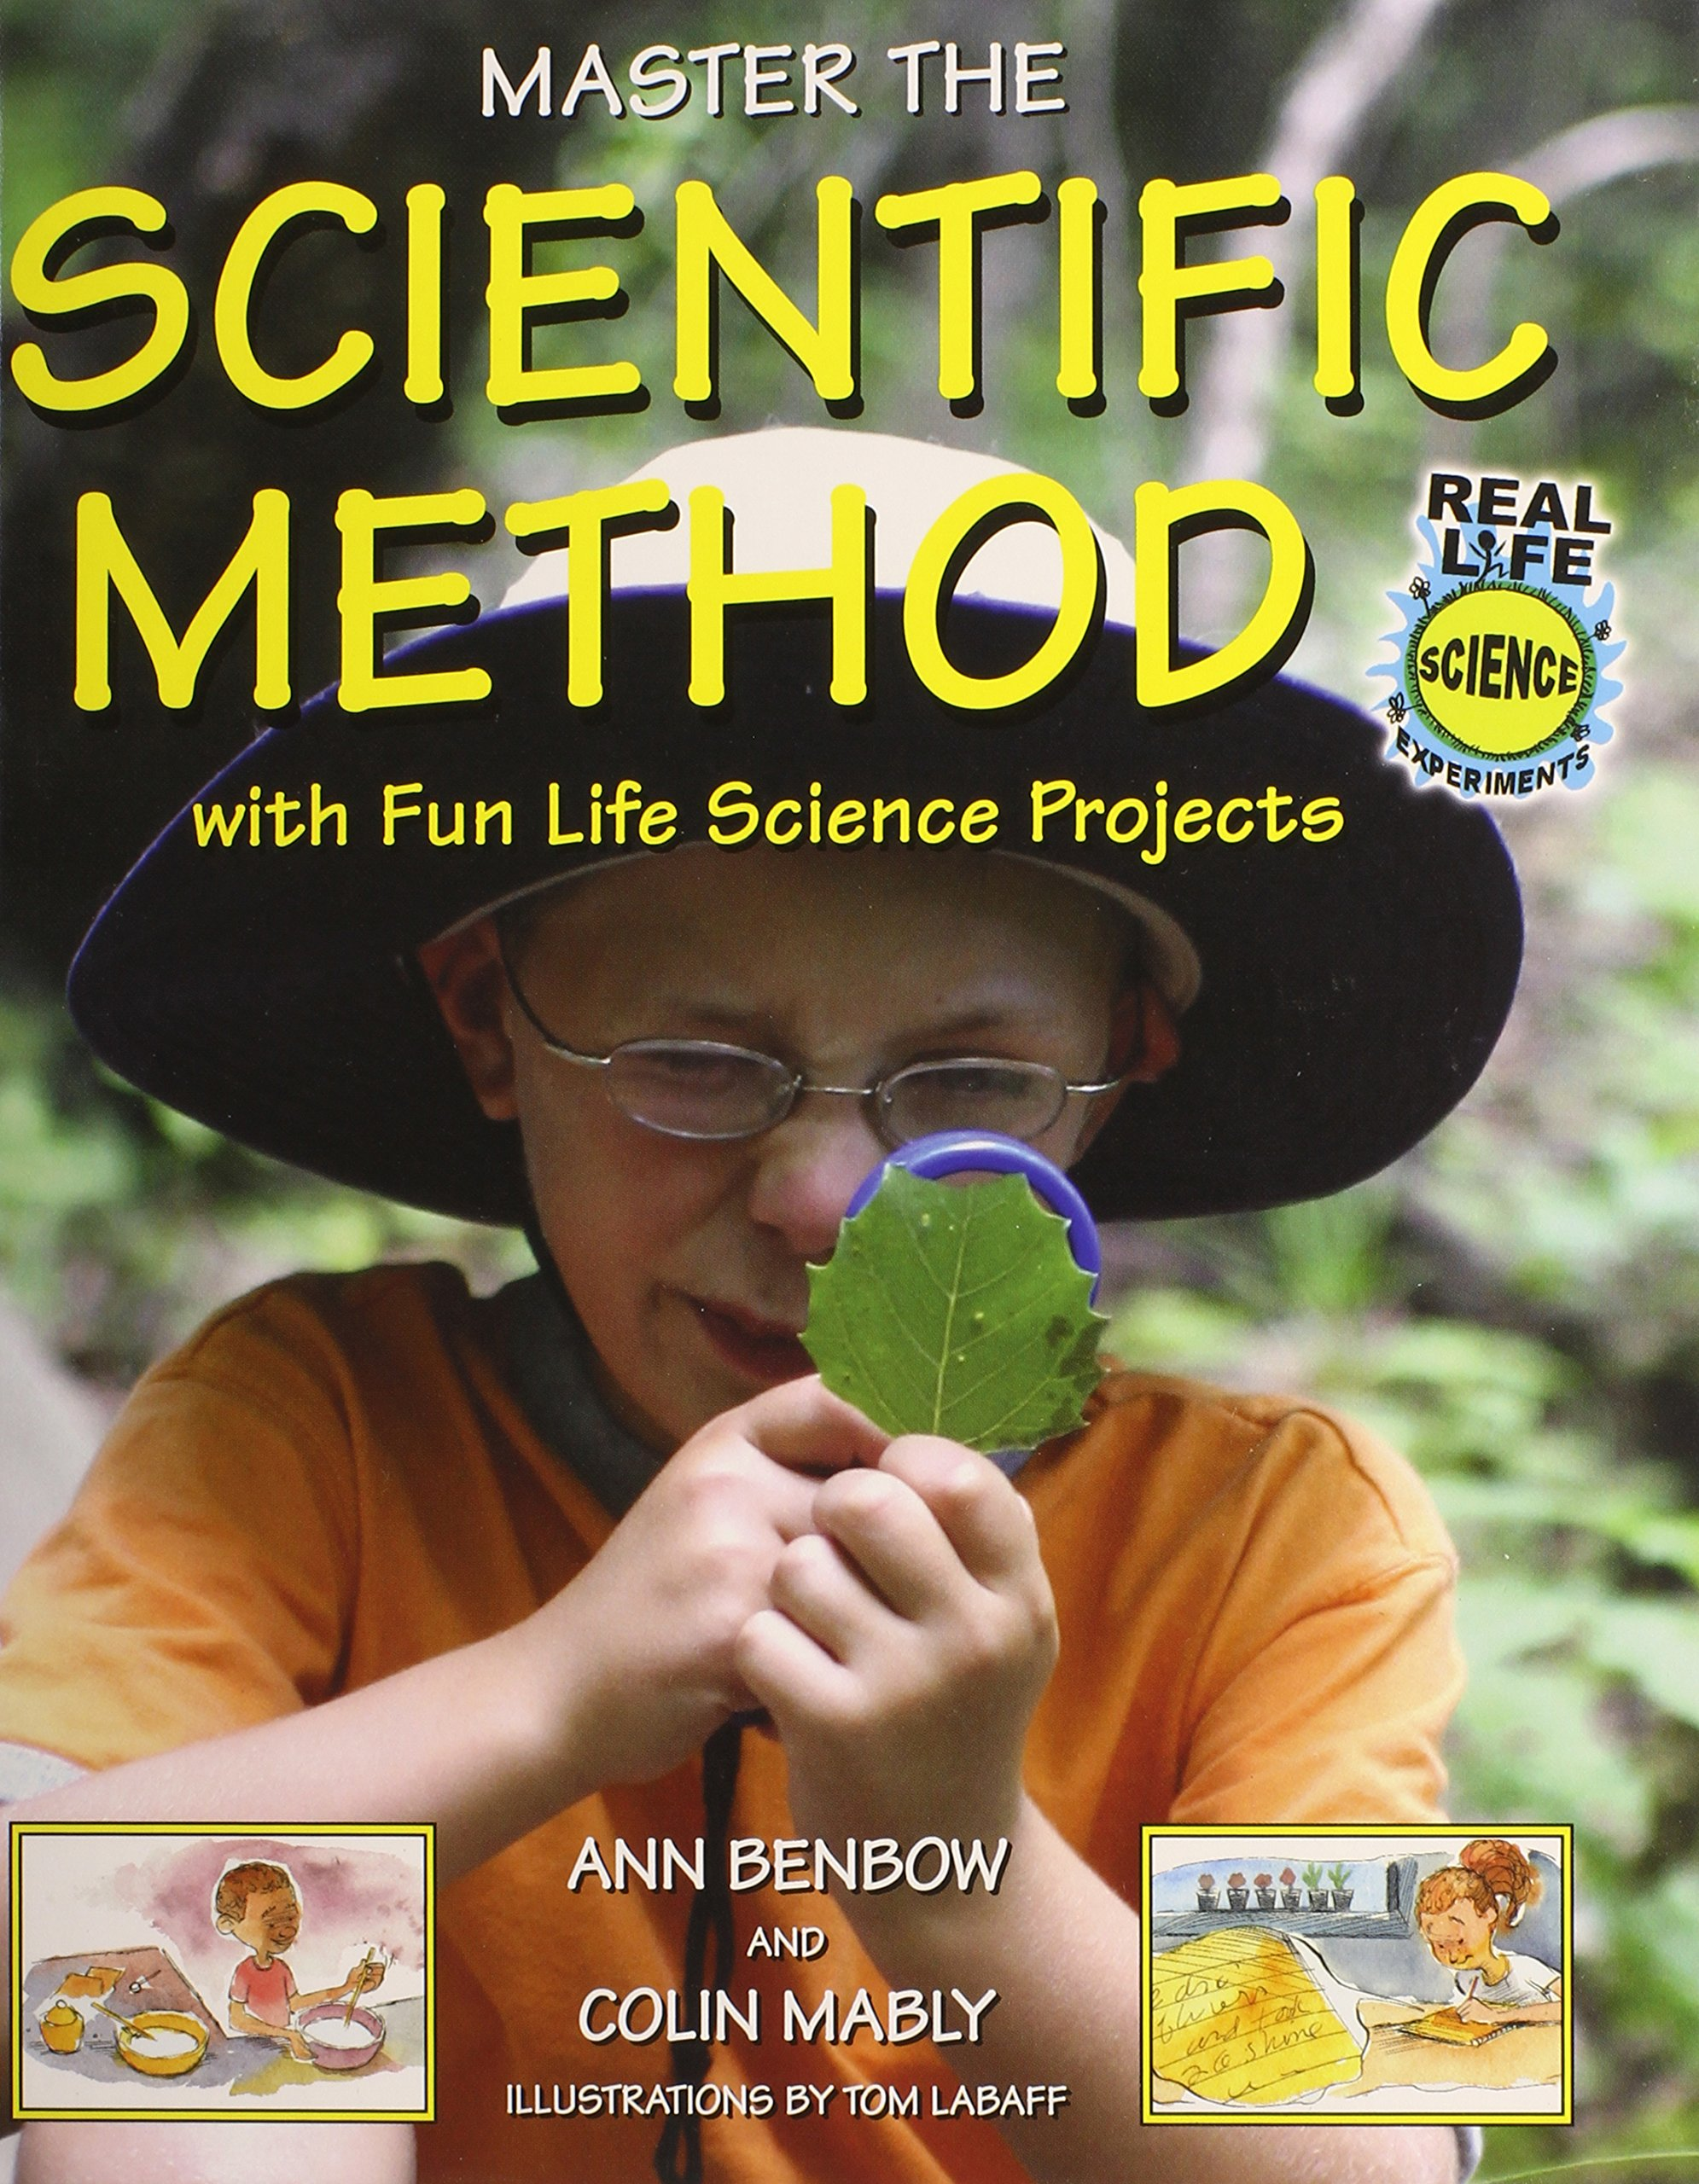 Master the Scientific Method With Fun Life Science Projects (Real Life Science Experiments)